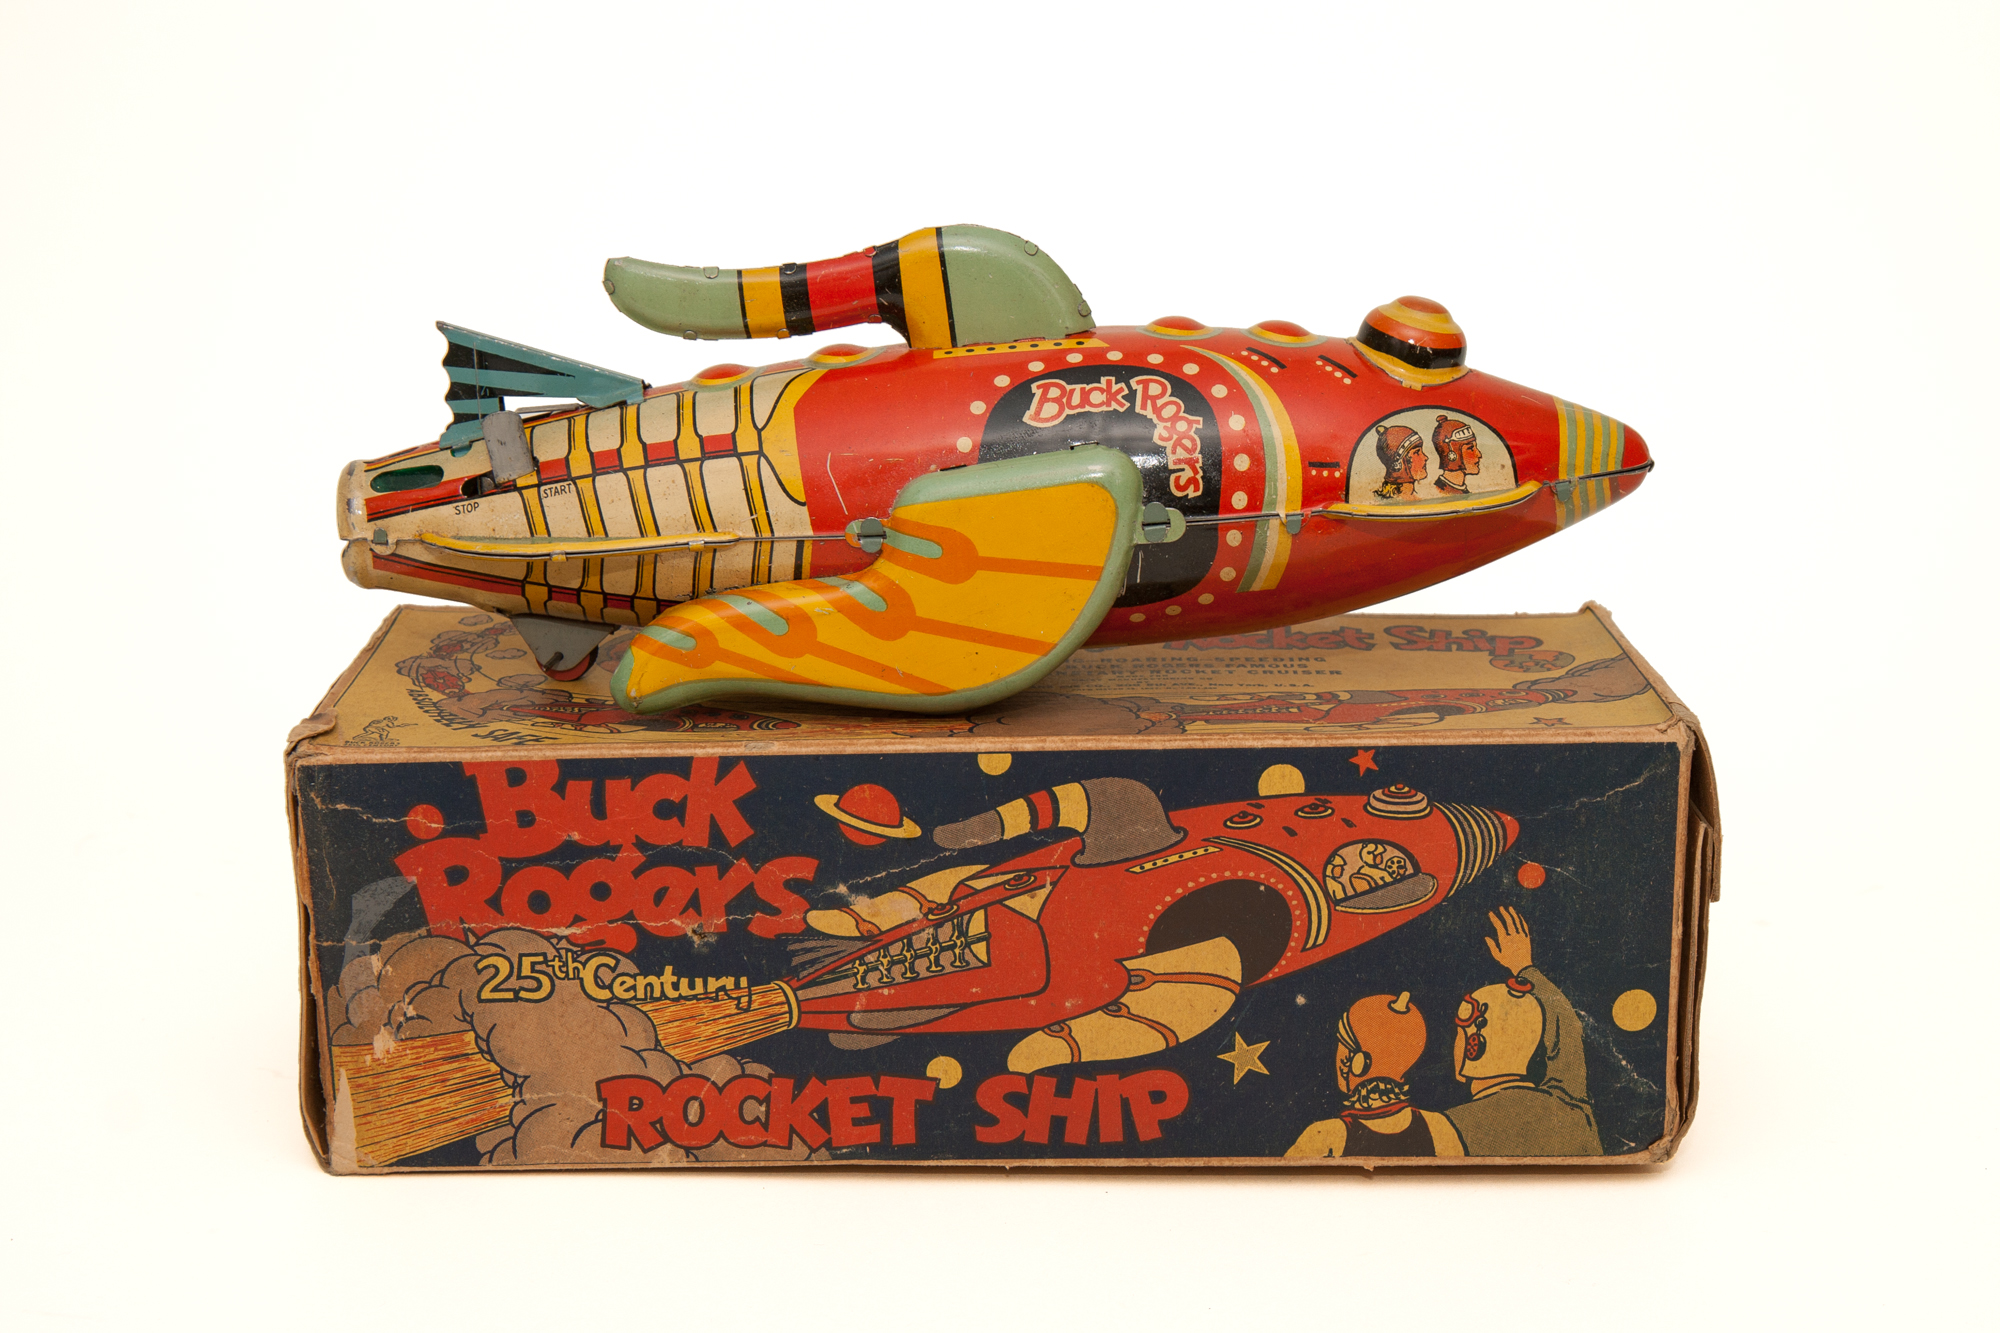 Toy Rocket Ship (Wind-Up) with Original Box – Buck Rogers (Marx 1934)